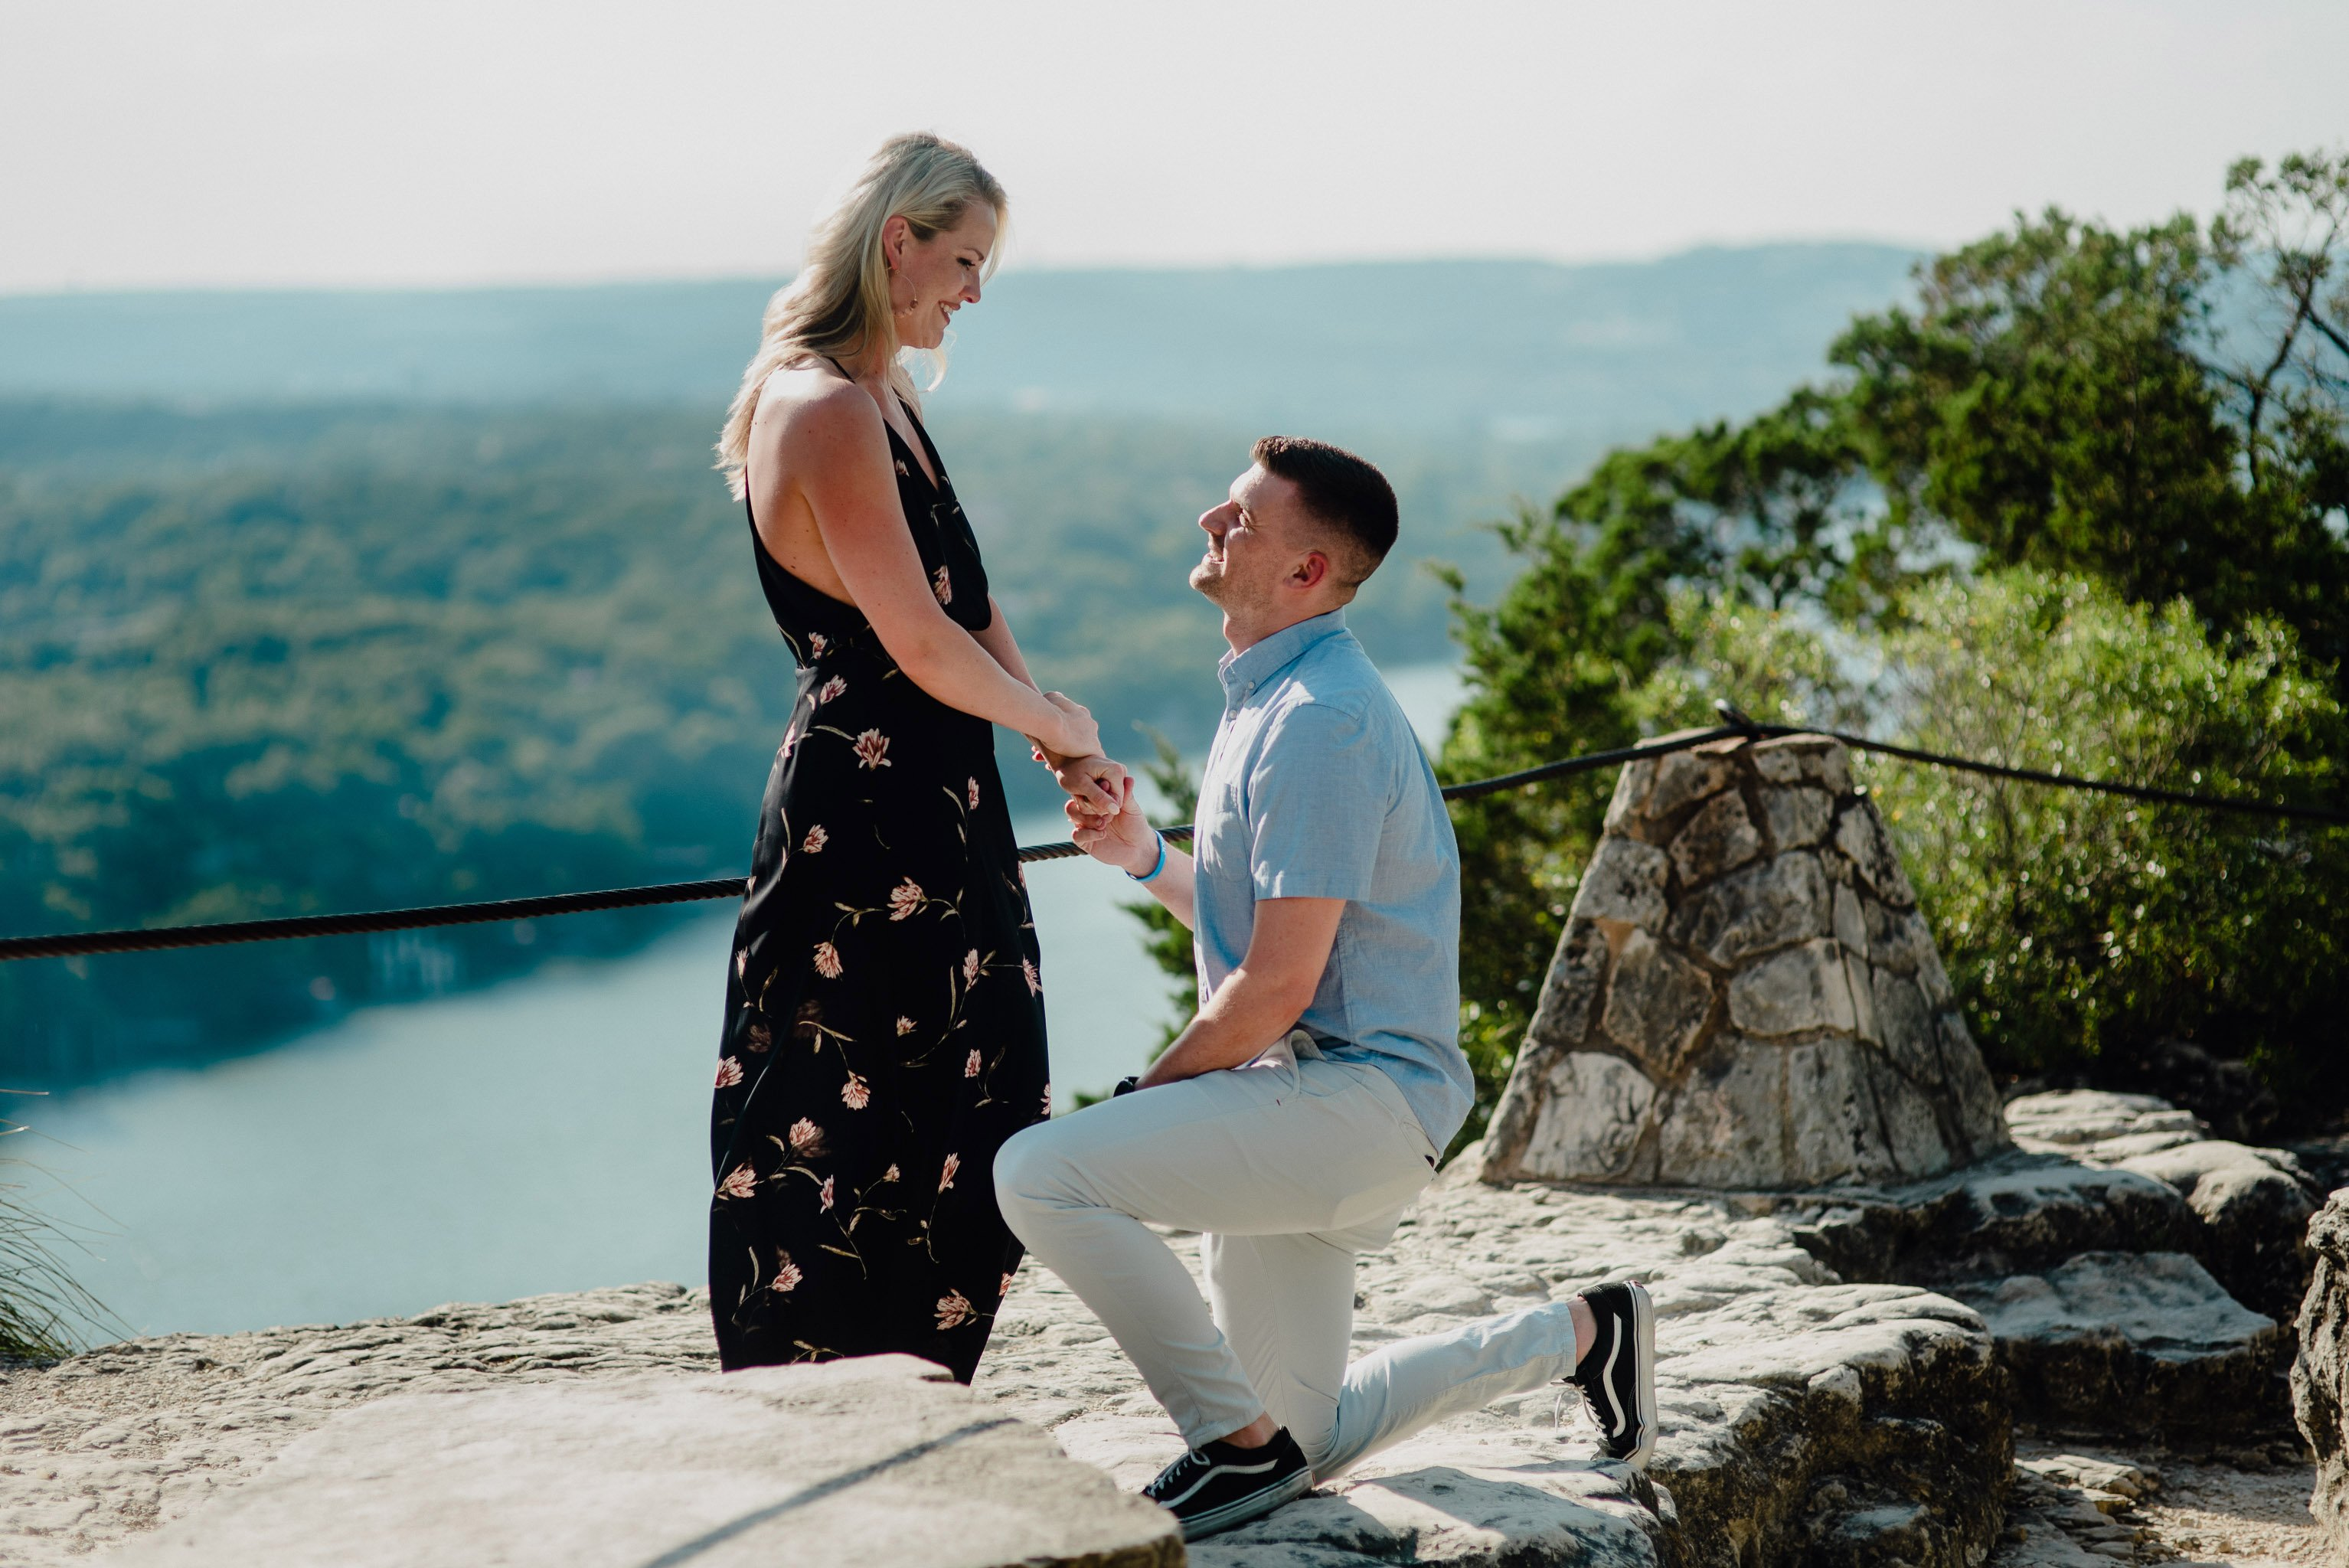 austin proposal photographer, proposal on top of mt. bonnell, outdoorsy proposal photos